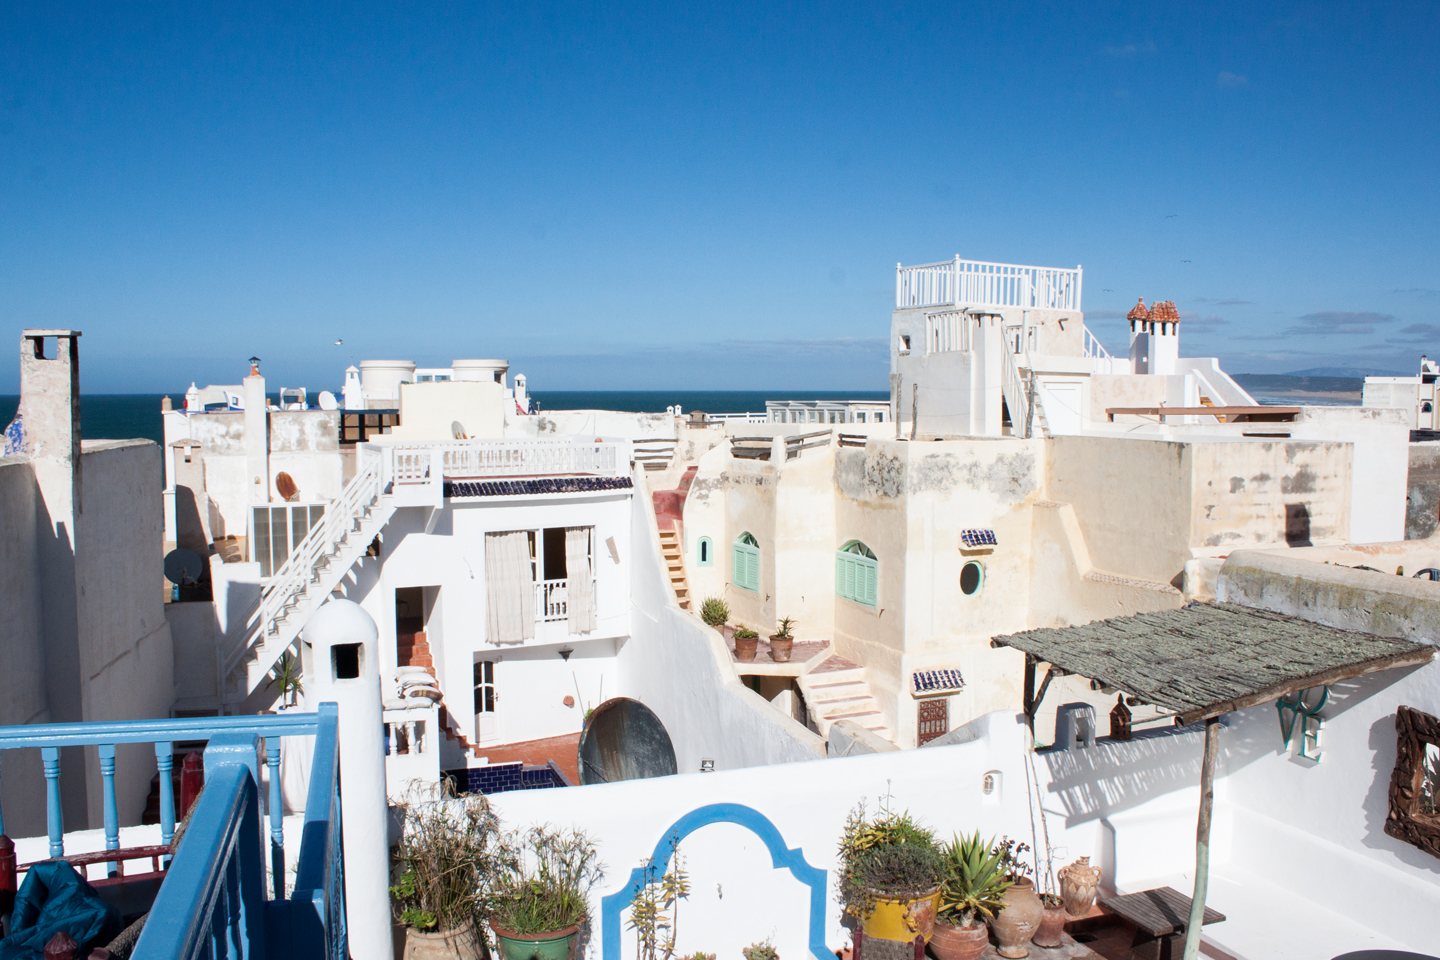 Rooftop view in Essaouira